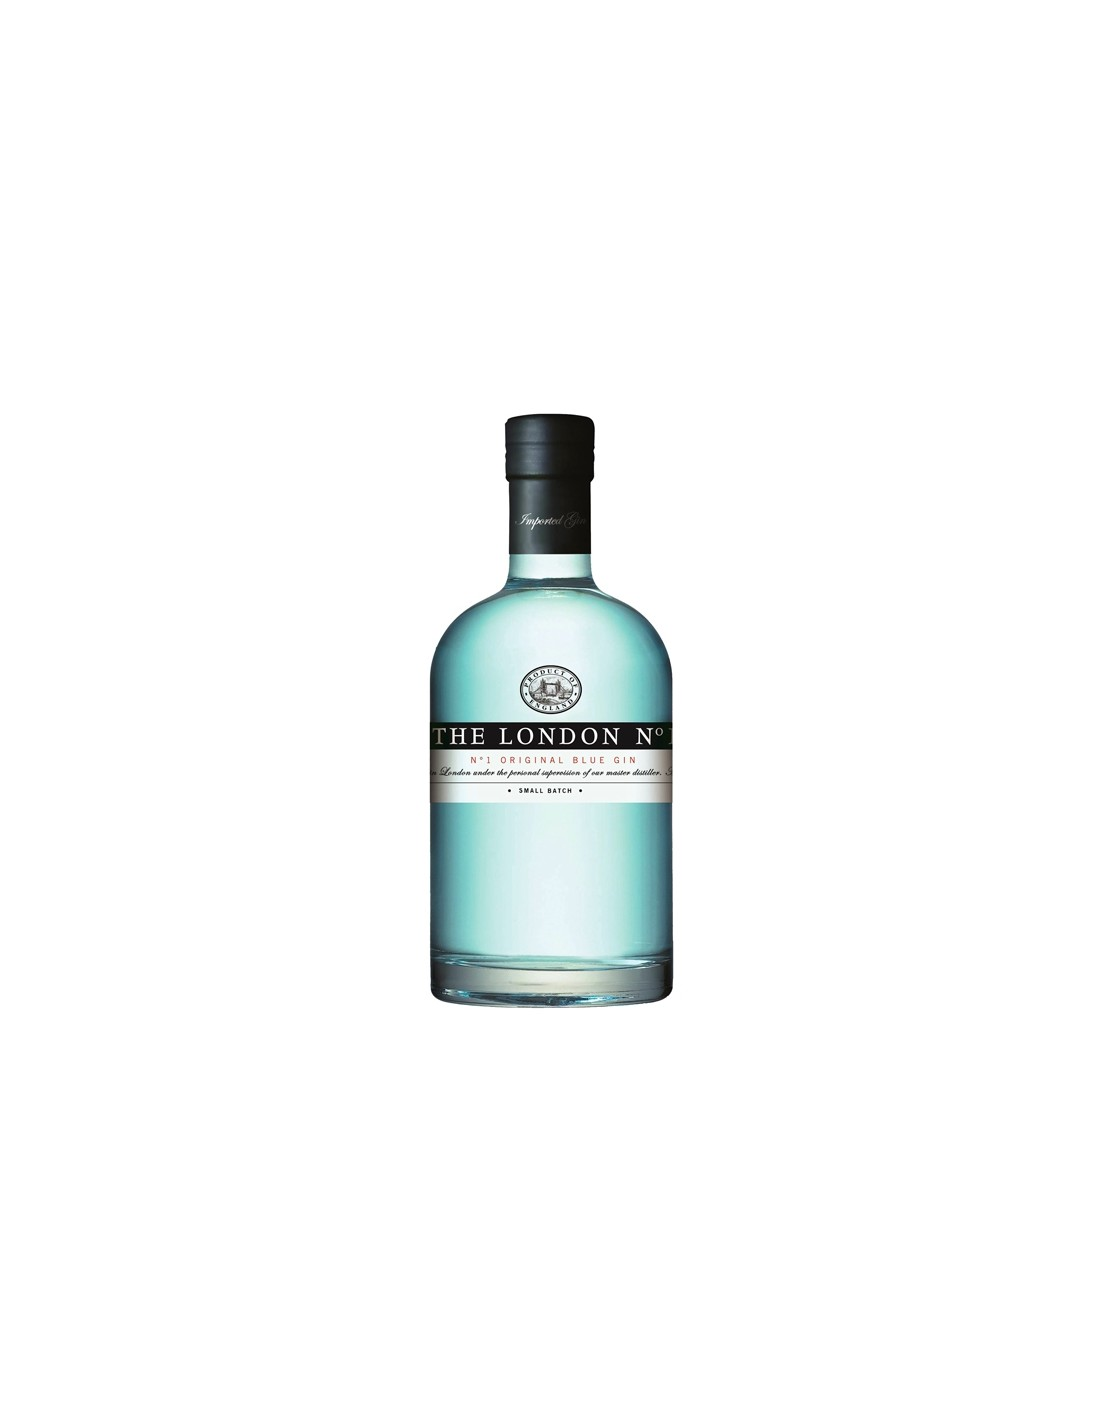 Gin The London No. 1 Blue 47% alc., 1L, Anglia